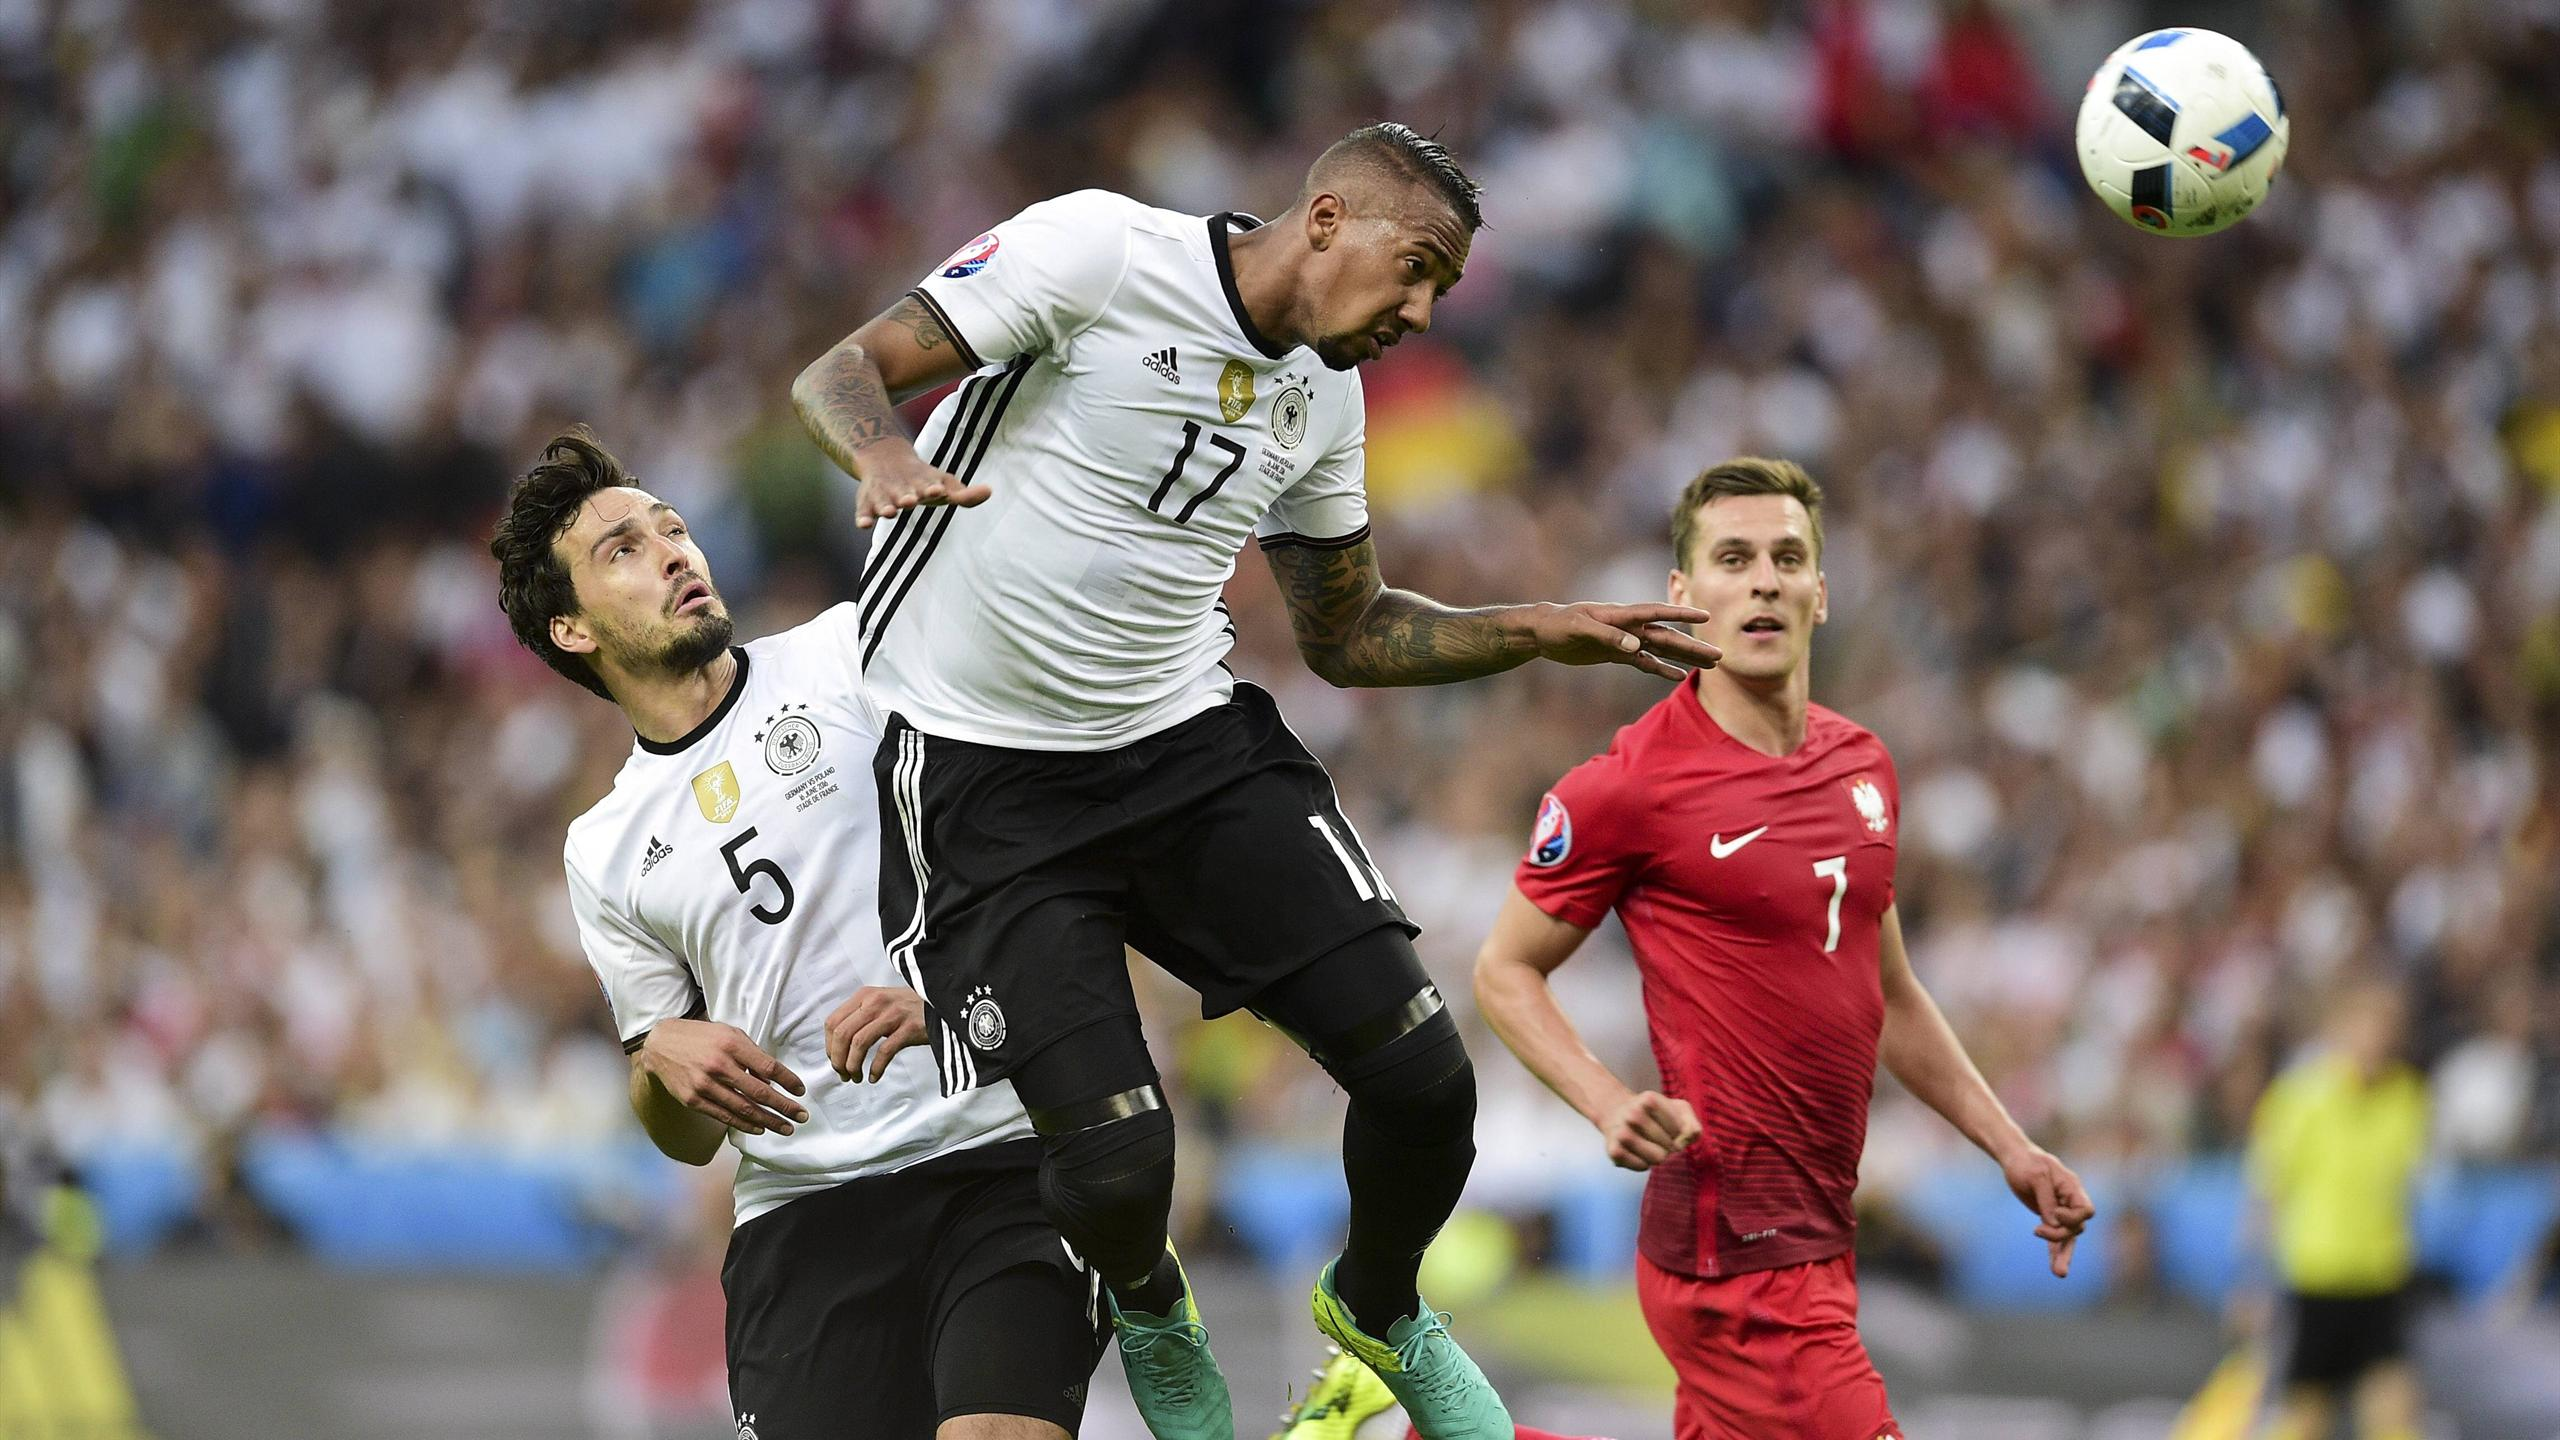 Mats Hummels and Jerome Boateng of team germany in the match against Poland